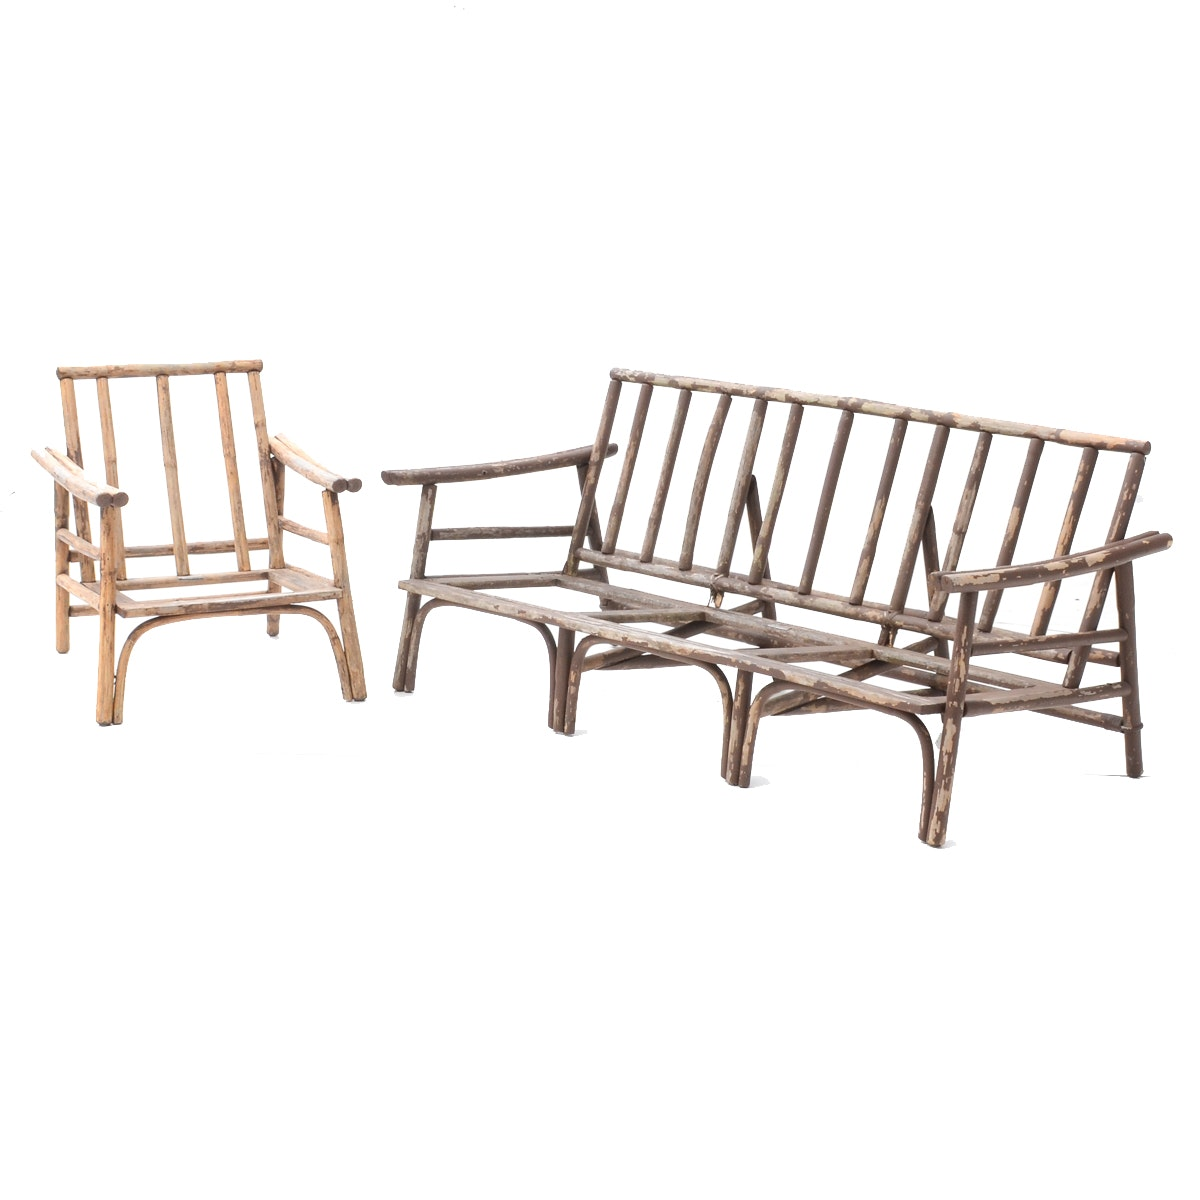 Vintage Ficks Reed Patio Sofa and Chair Frames